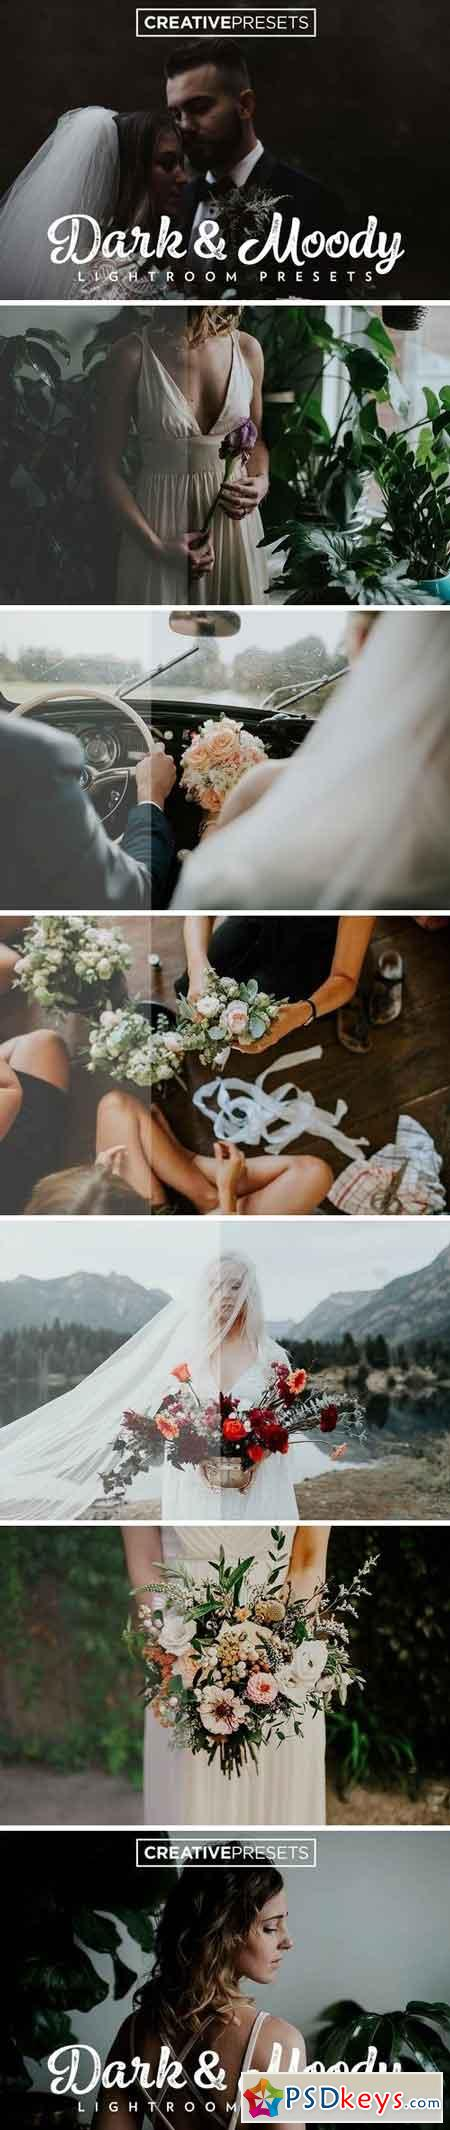 +75 DARK AND MOODY LIGHTROOM PRESETS 3273039